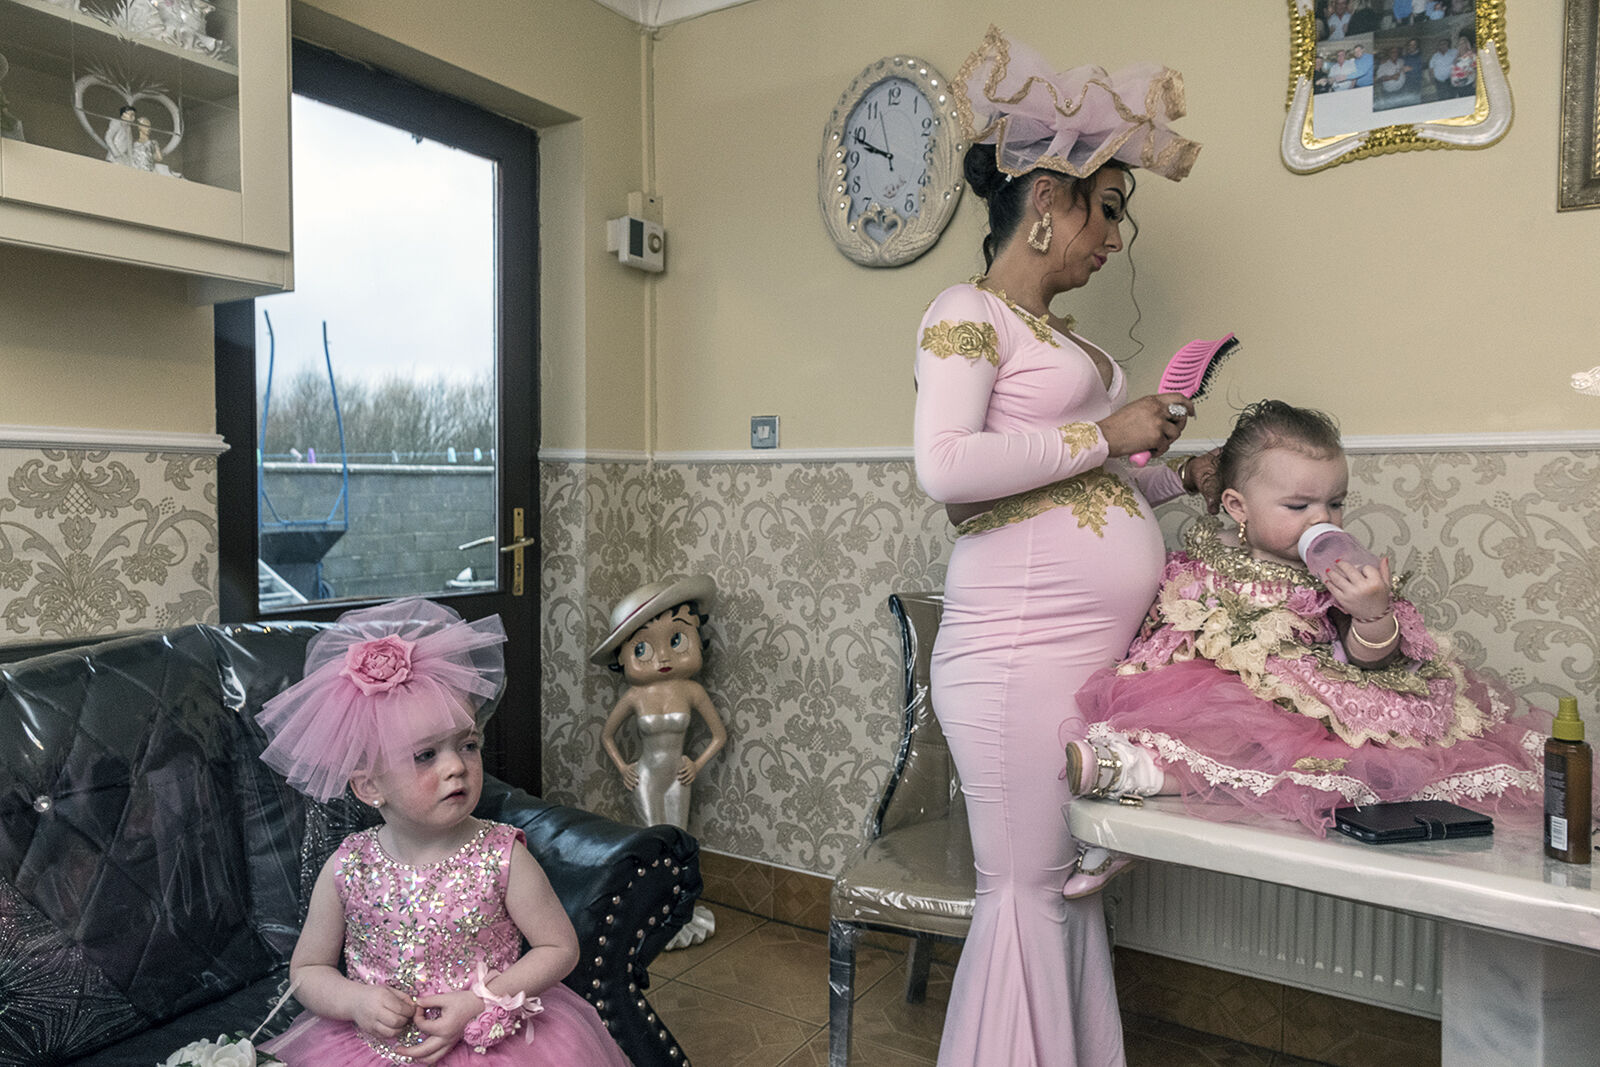 Santanna Getting Girls Ready for Wedding, Galway, Ireland 2019